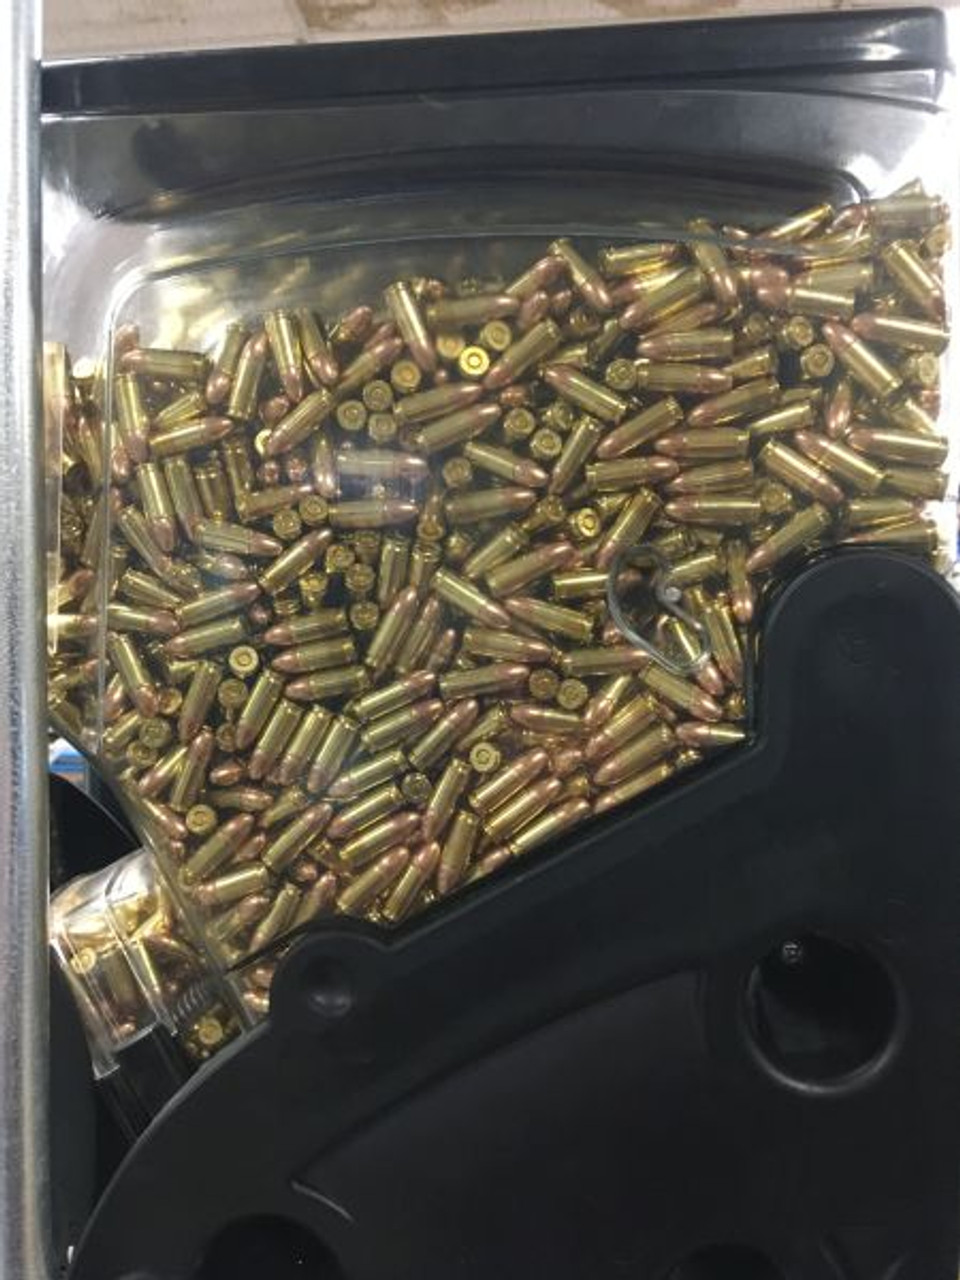 Facebook Ammunition Special - 9mm - 5 pounds